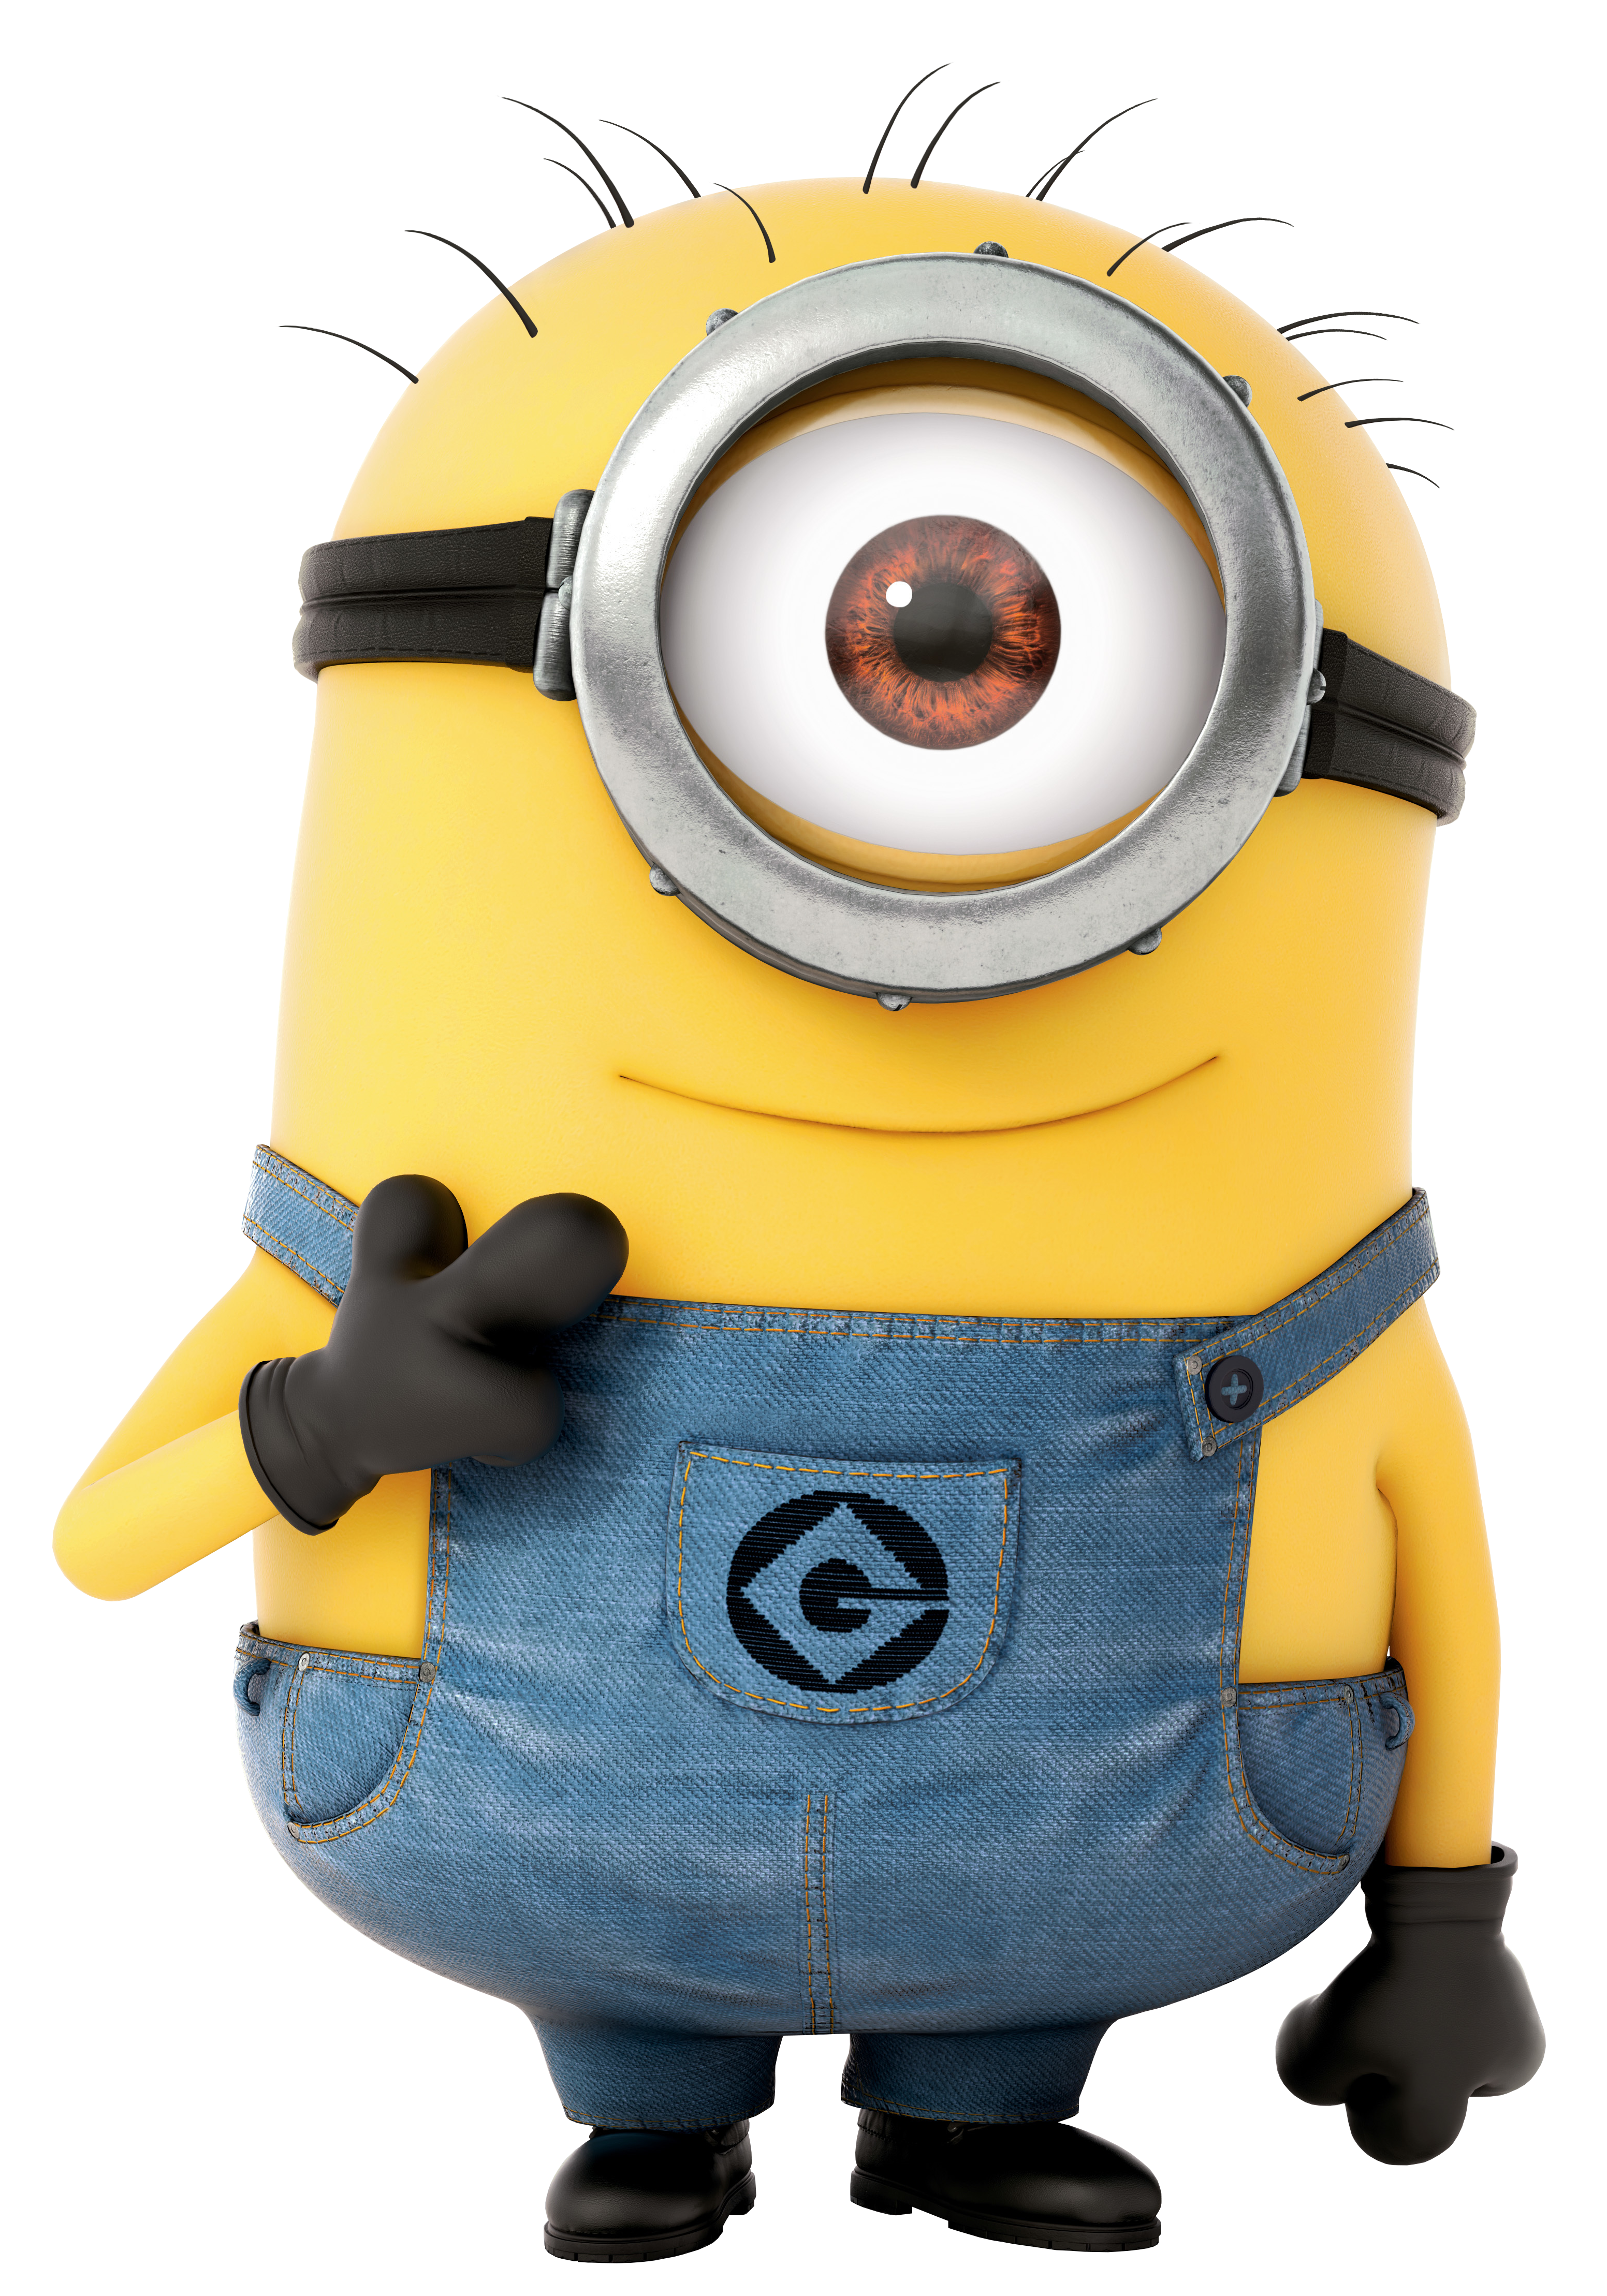 Minions png transparent. Minion cartoon image gallery